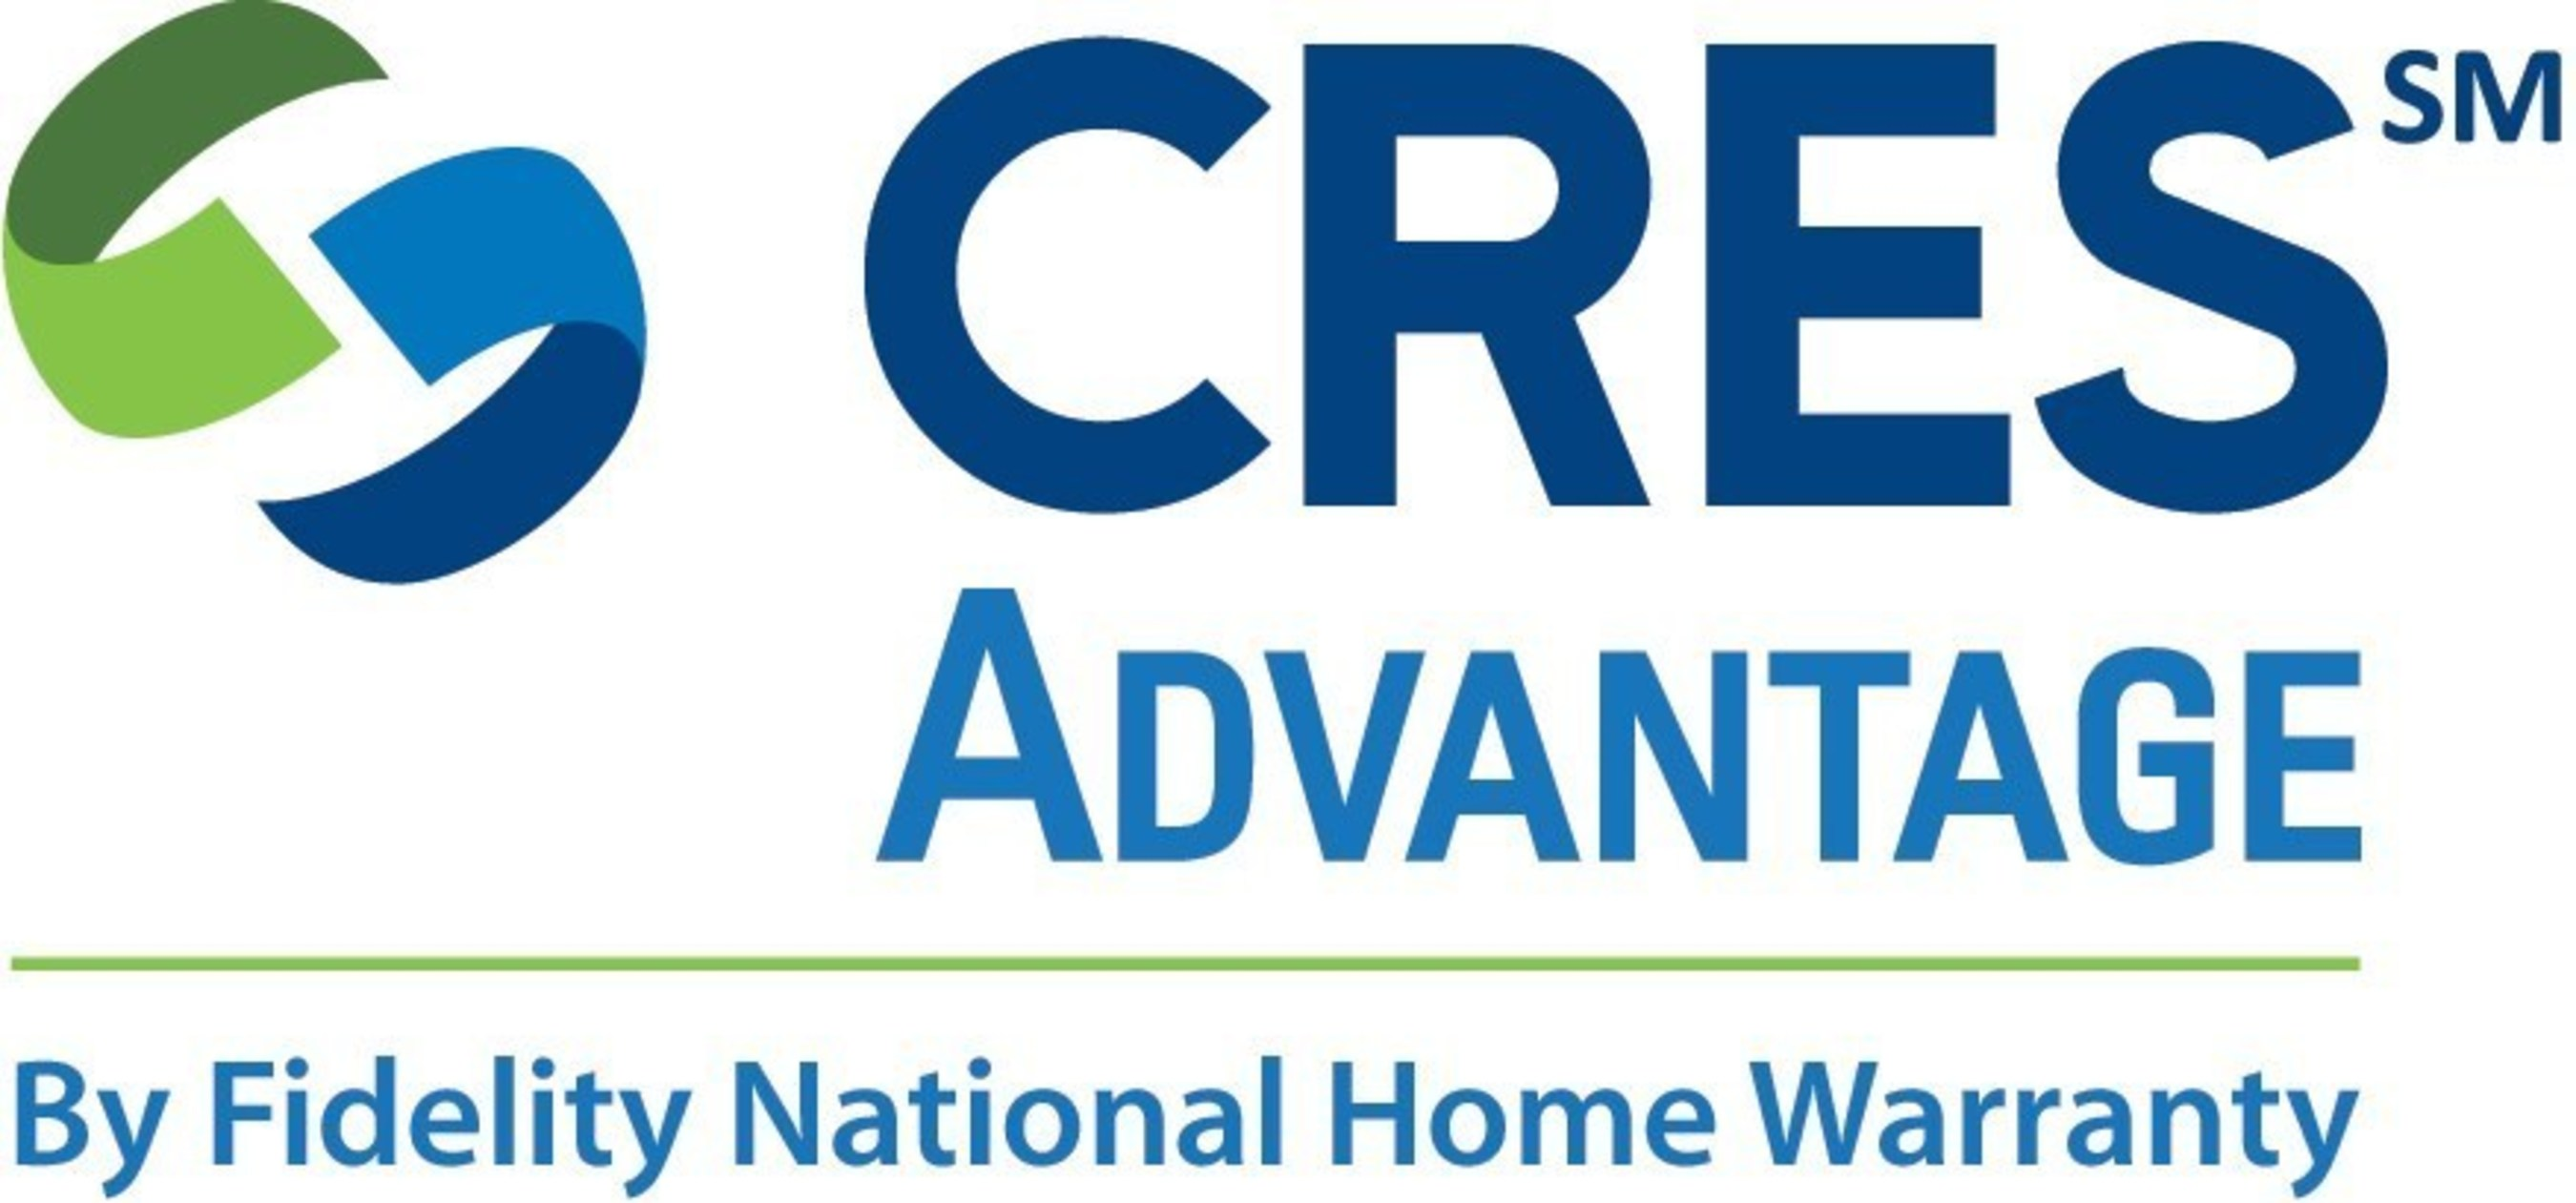 Fidelity National Home Warranty (FNHW) Forms Strategic Partnership with CRES Insurance